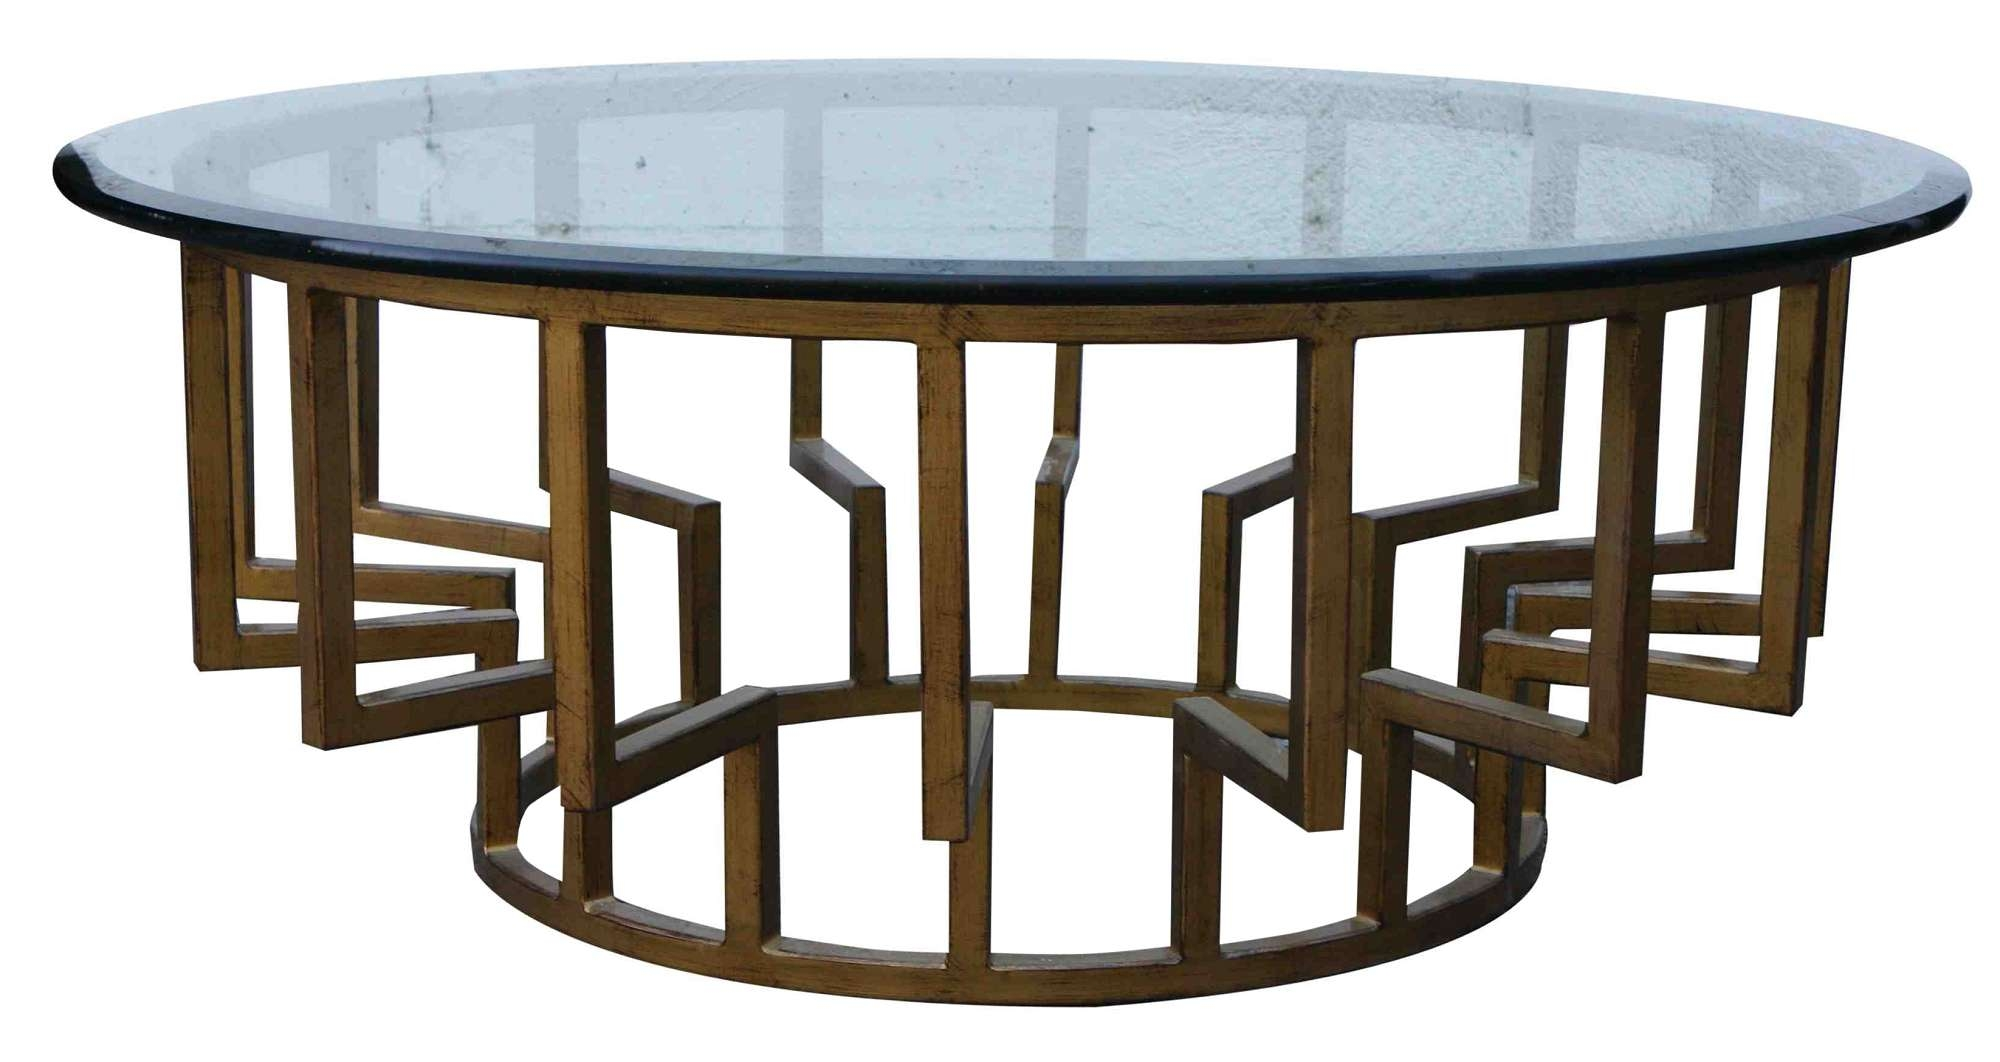 Most Recent Contemporary Round Coffee Tables Intended For Coffee Table: Contemporary Round Coffee Table Contemporary Square (View 18 of 20)